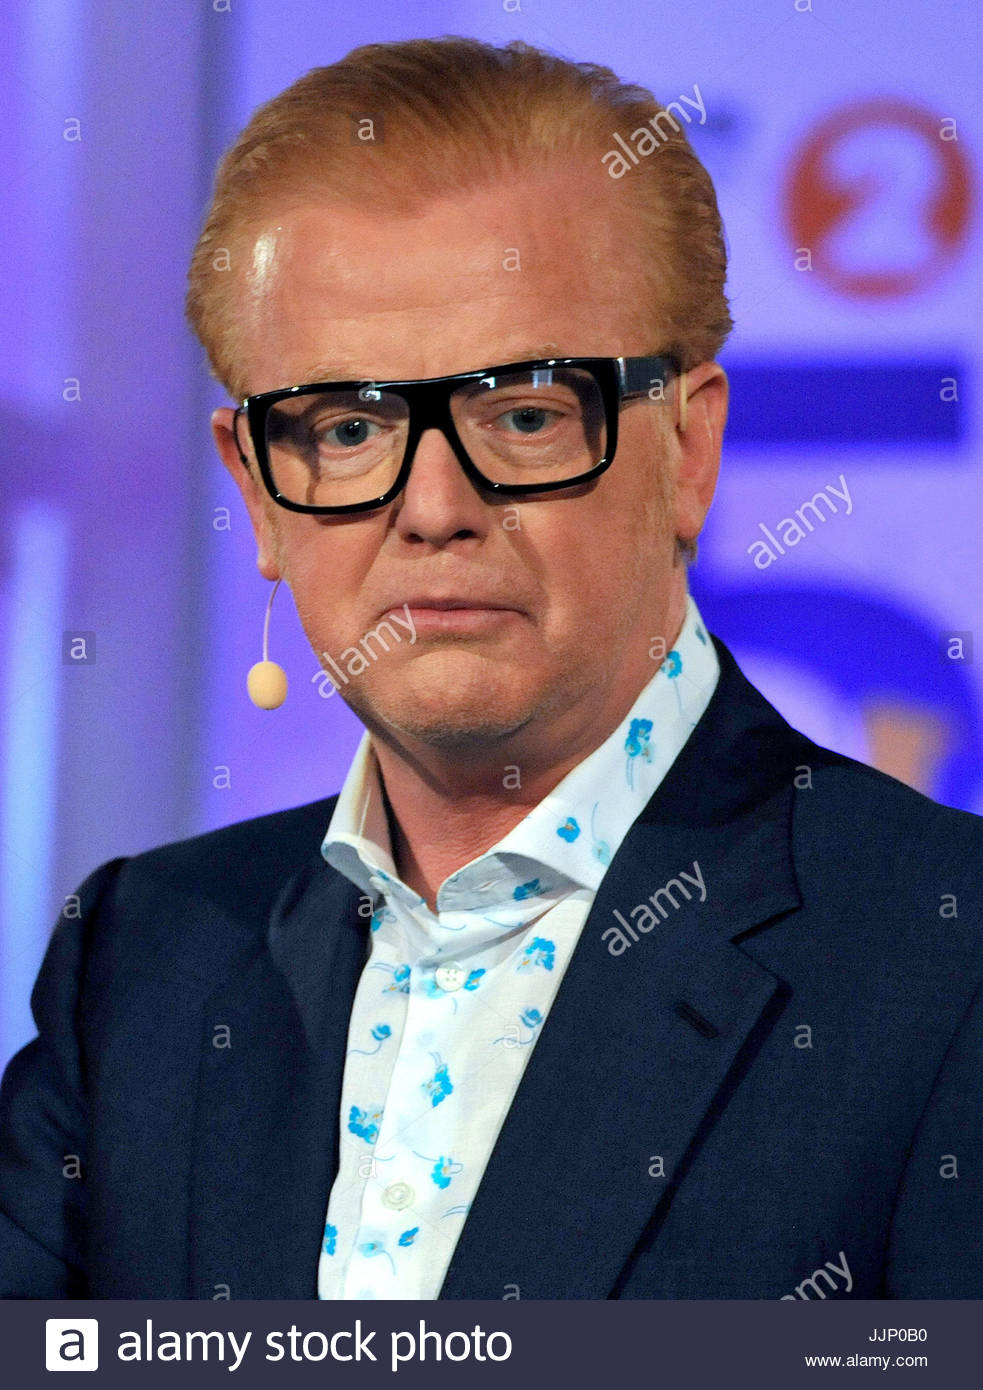 File photo dated 16/06/17 of millionaire presenter Chris Evans, who has said he phoned his elderly mother for advice - Stock Image